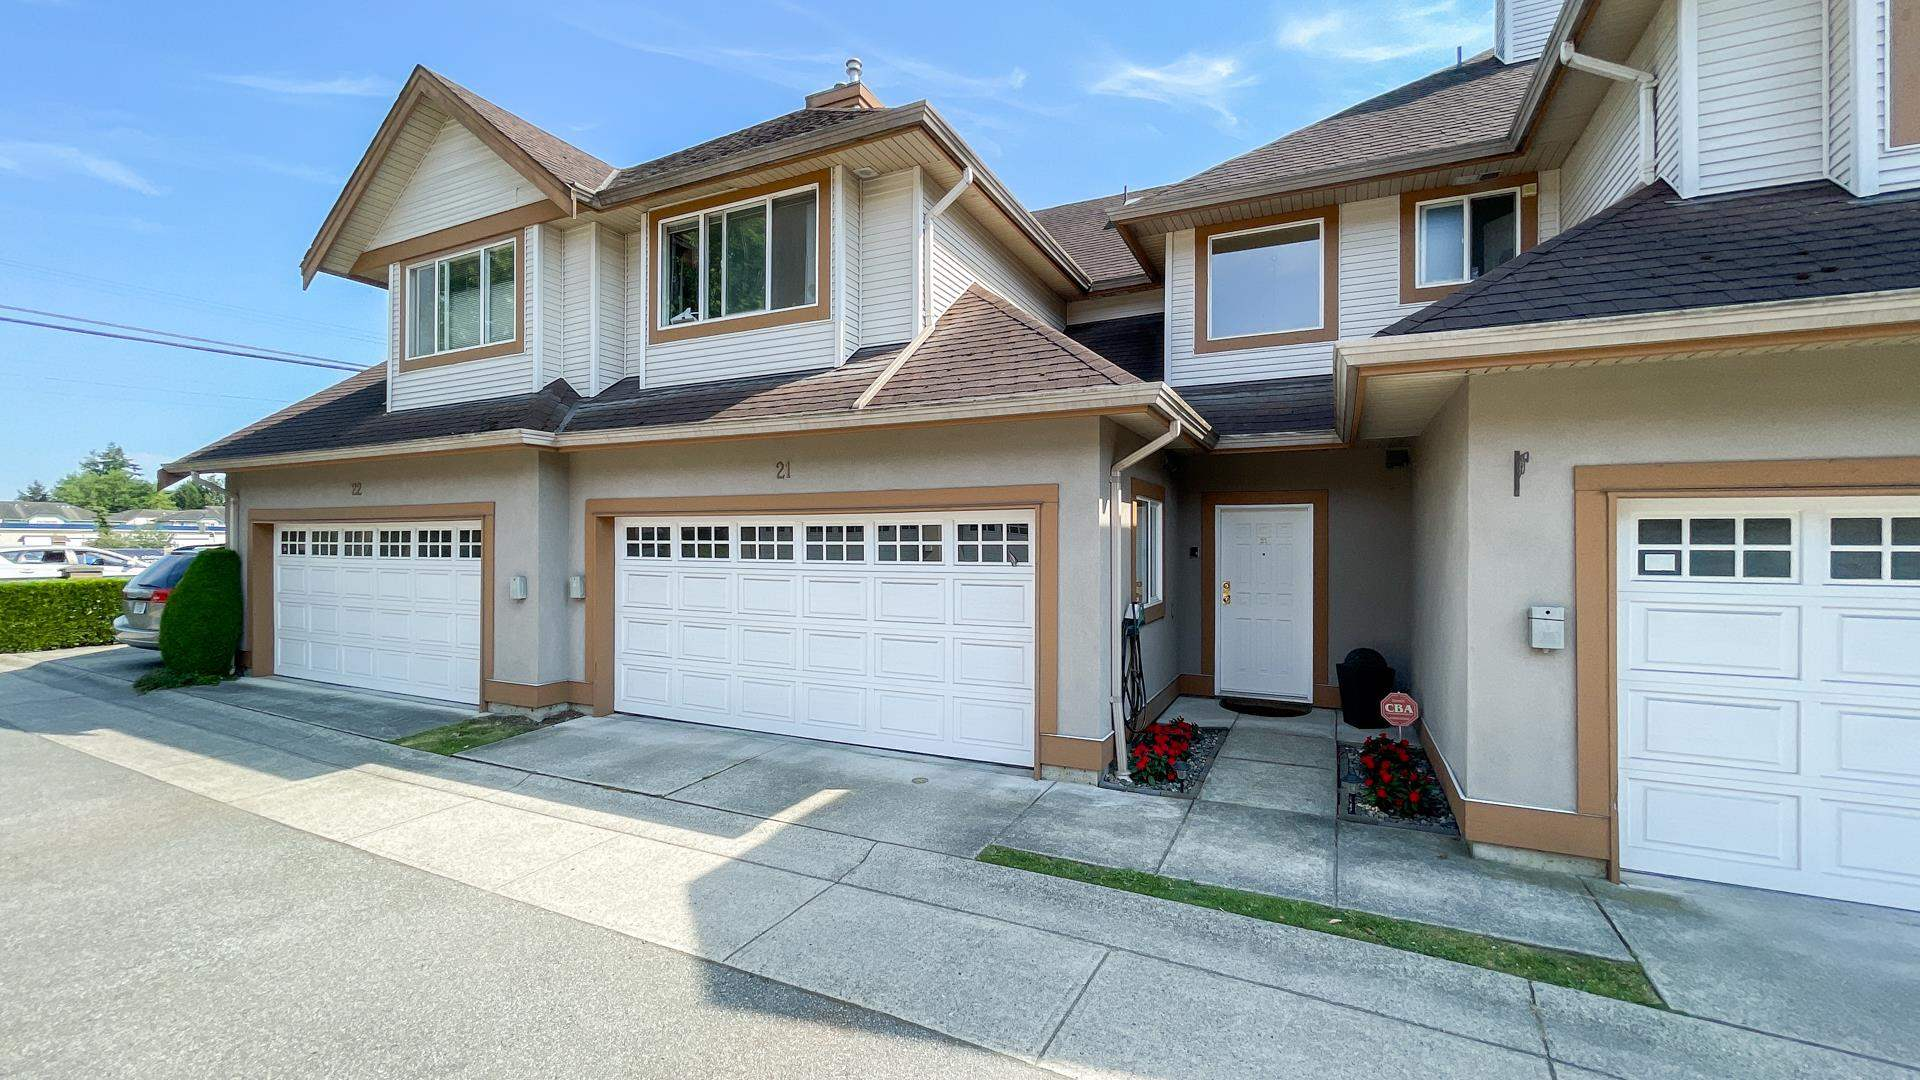 21 11888 MELLIS DRIVE - East Cambie Townhouse for sale, 3 Bedrooms (R2601288)